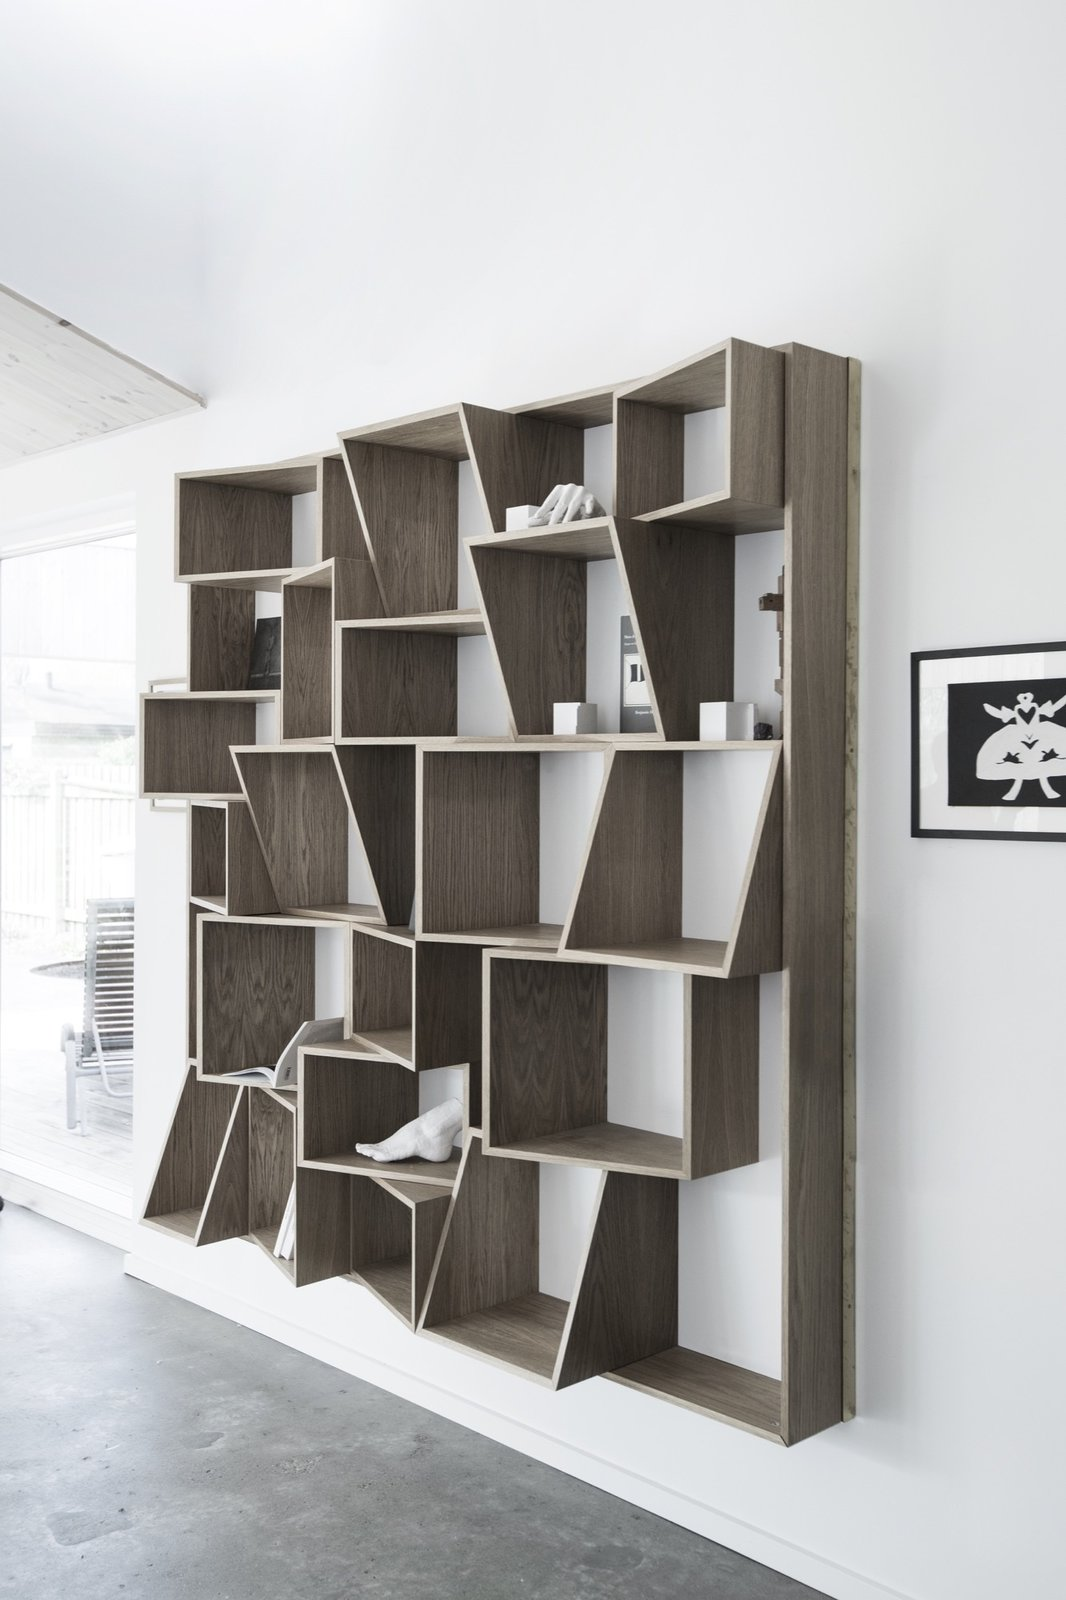 Bookcase, Shelves, Storage Room, and Shelves Storage Type  The Roof House